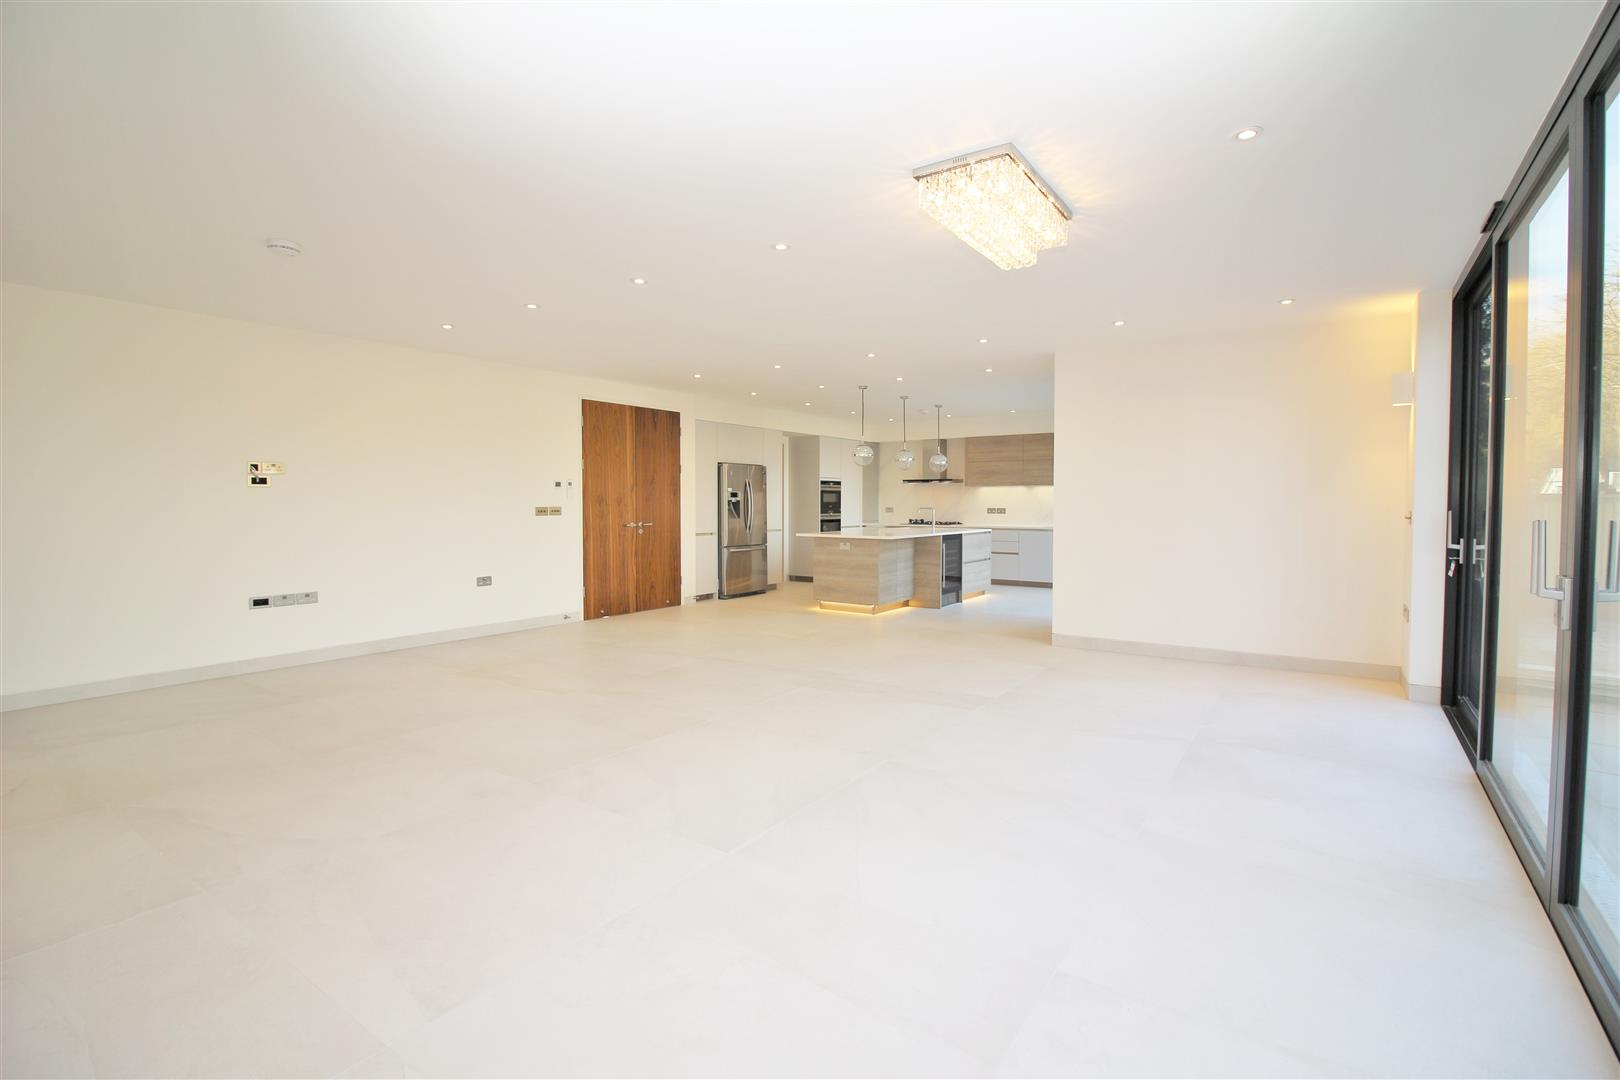 7 bed to rent - (Property Image 2)